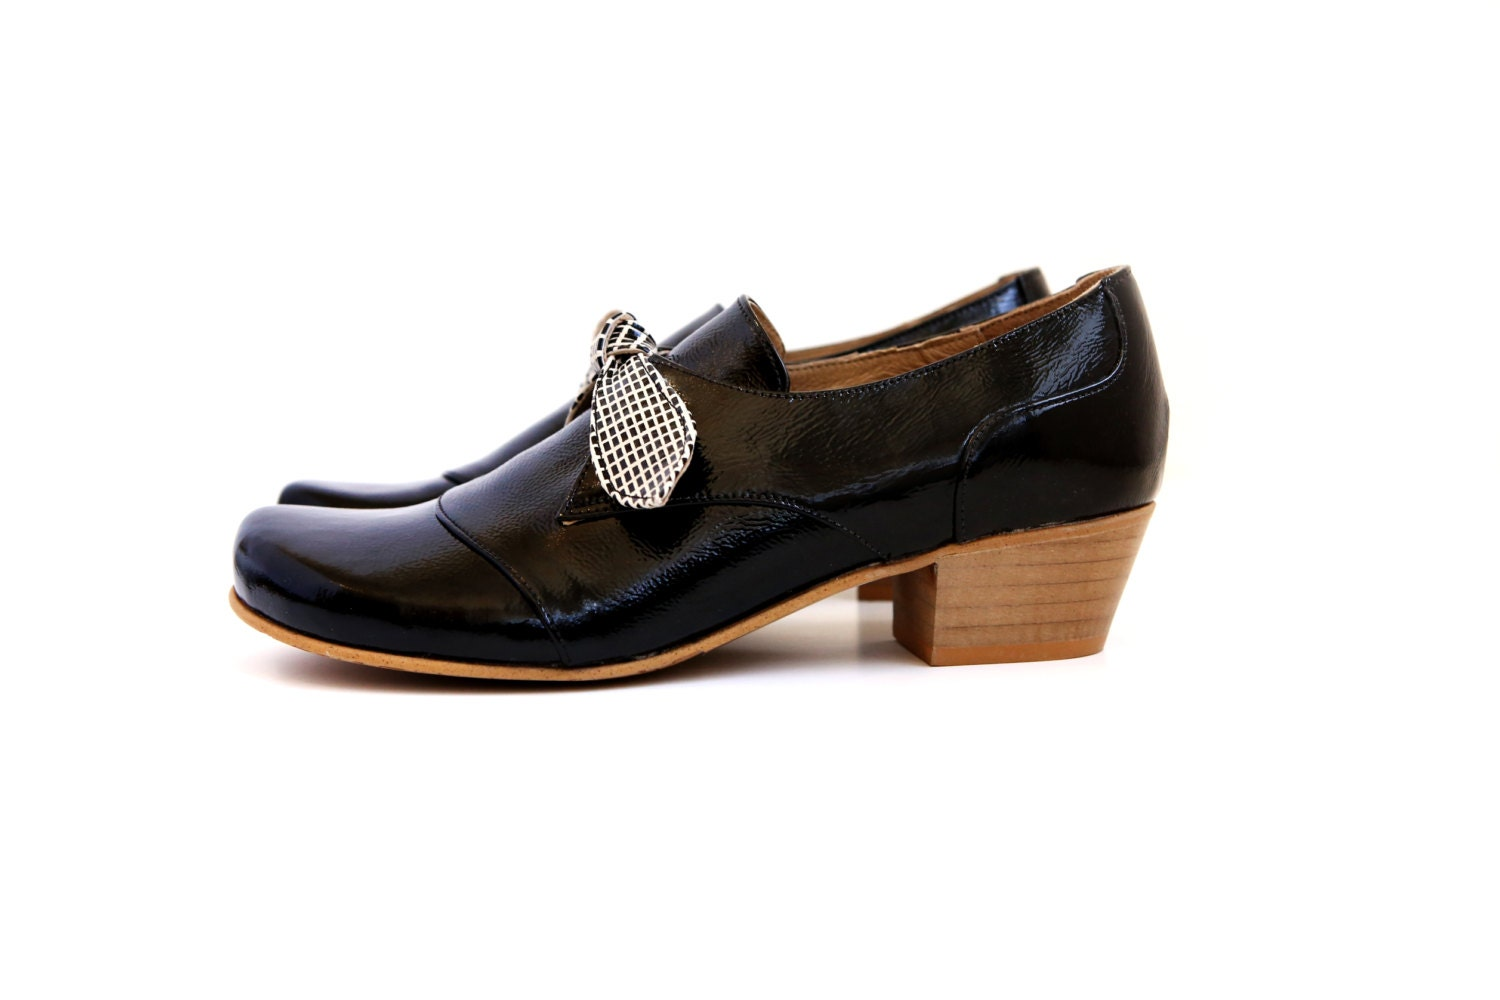 womens dress shoes black patent leather shoes wide heels